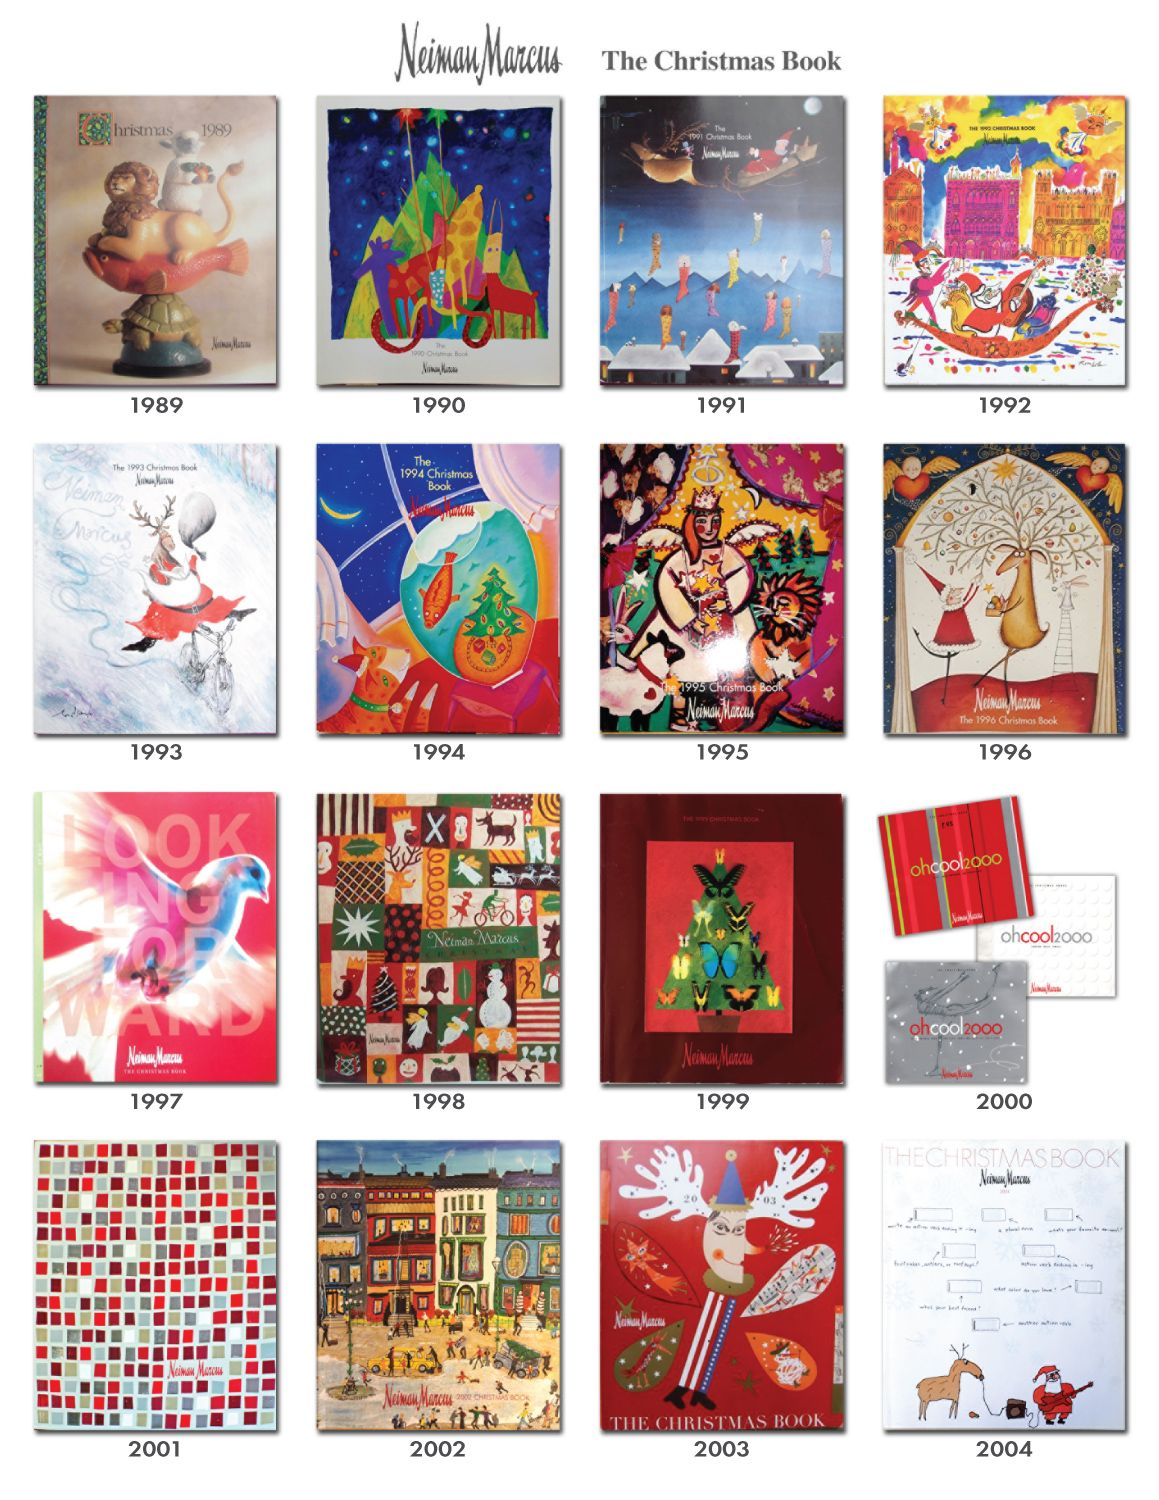 History Of Neiman Marcus The Christmas Book Fashion Catalogs